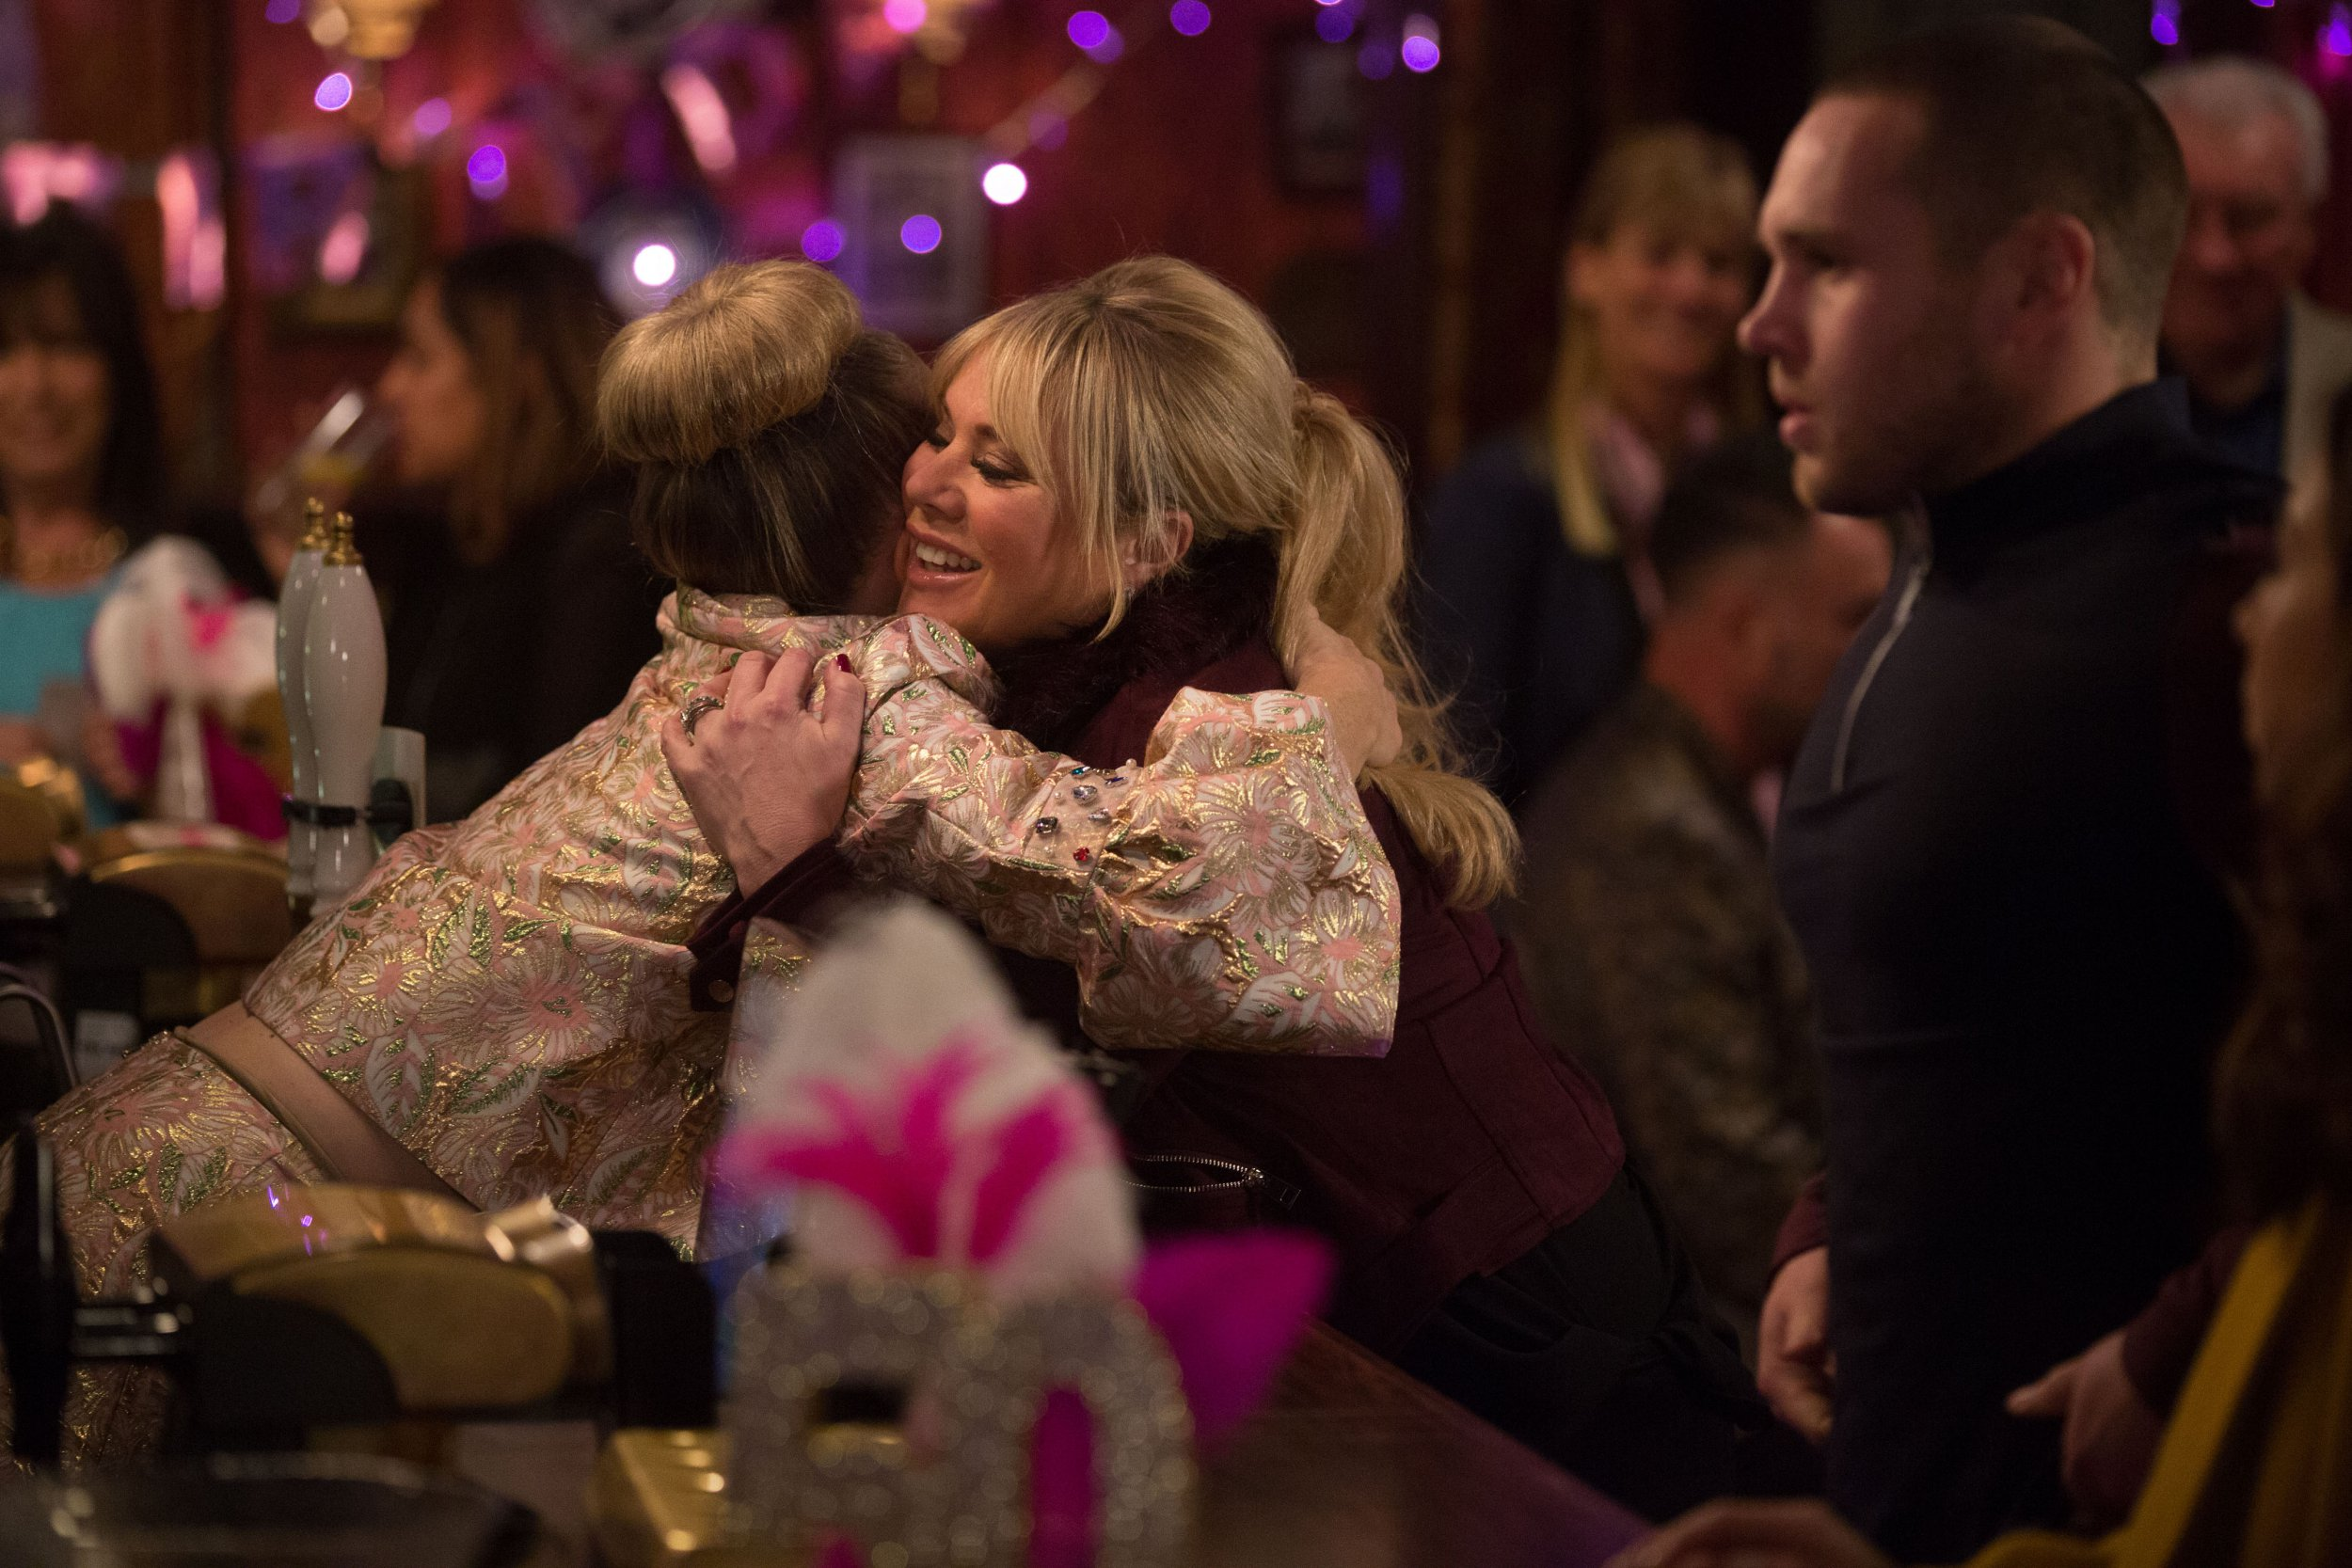 WARNING: Embargoed for publication until 00:00:01 on 22/01/2019 - Programme Name: EastEnders - January - March 2019 - TX: 29/01/2019 - Episode: EastEnders - January - March - 2019 - 5859 (No. 5859) - Picture Shows: *STRICTLY NOT FOR PUBLICATION UNTIL 00:01HRS TUESDAY 22nd JANUARY 2019* Linda is happy Sharon is back Linda Carter (KELLIE BRIGHT), Sharon Mitchell (LETITIA DEAN) - (C) BBC - Photographer: Jack Barnes